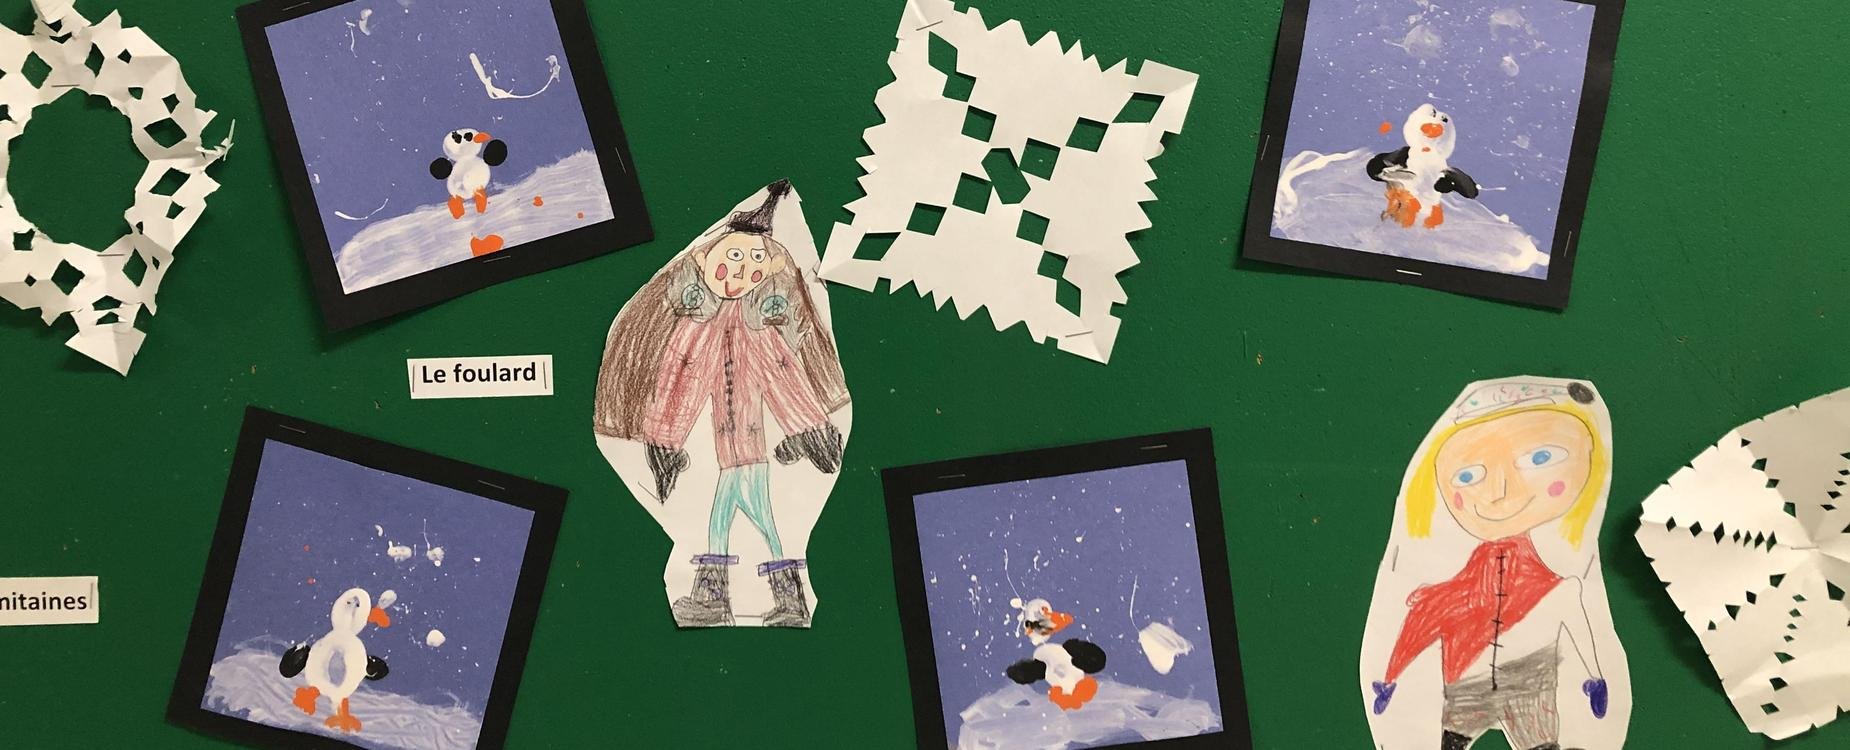 Painted pictures of penguins and cut out paper snowflakes, along with student drawings of themselves